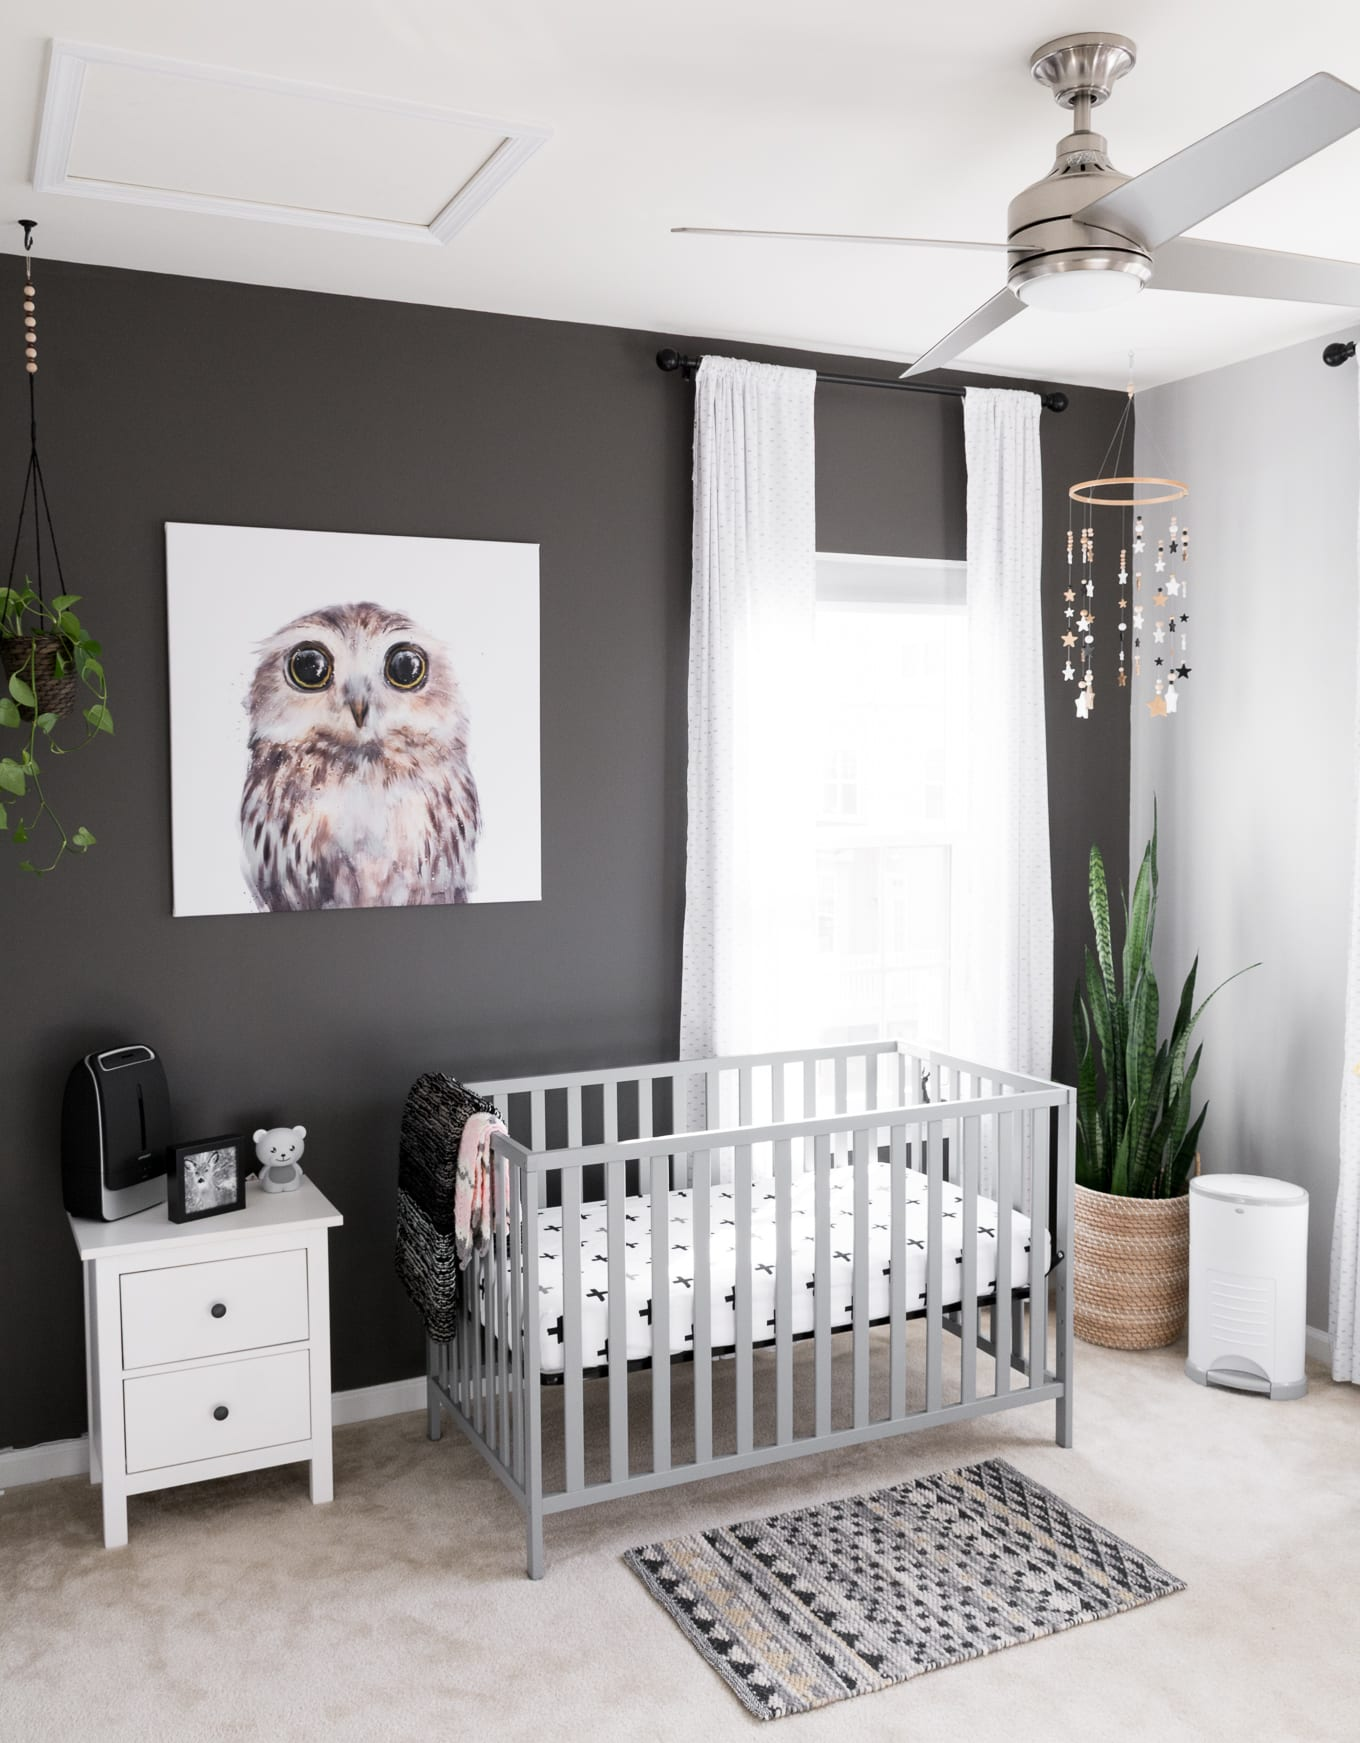 DIY nursery mobile